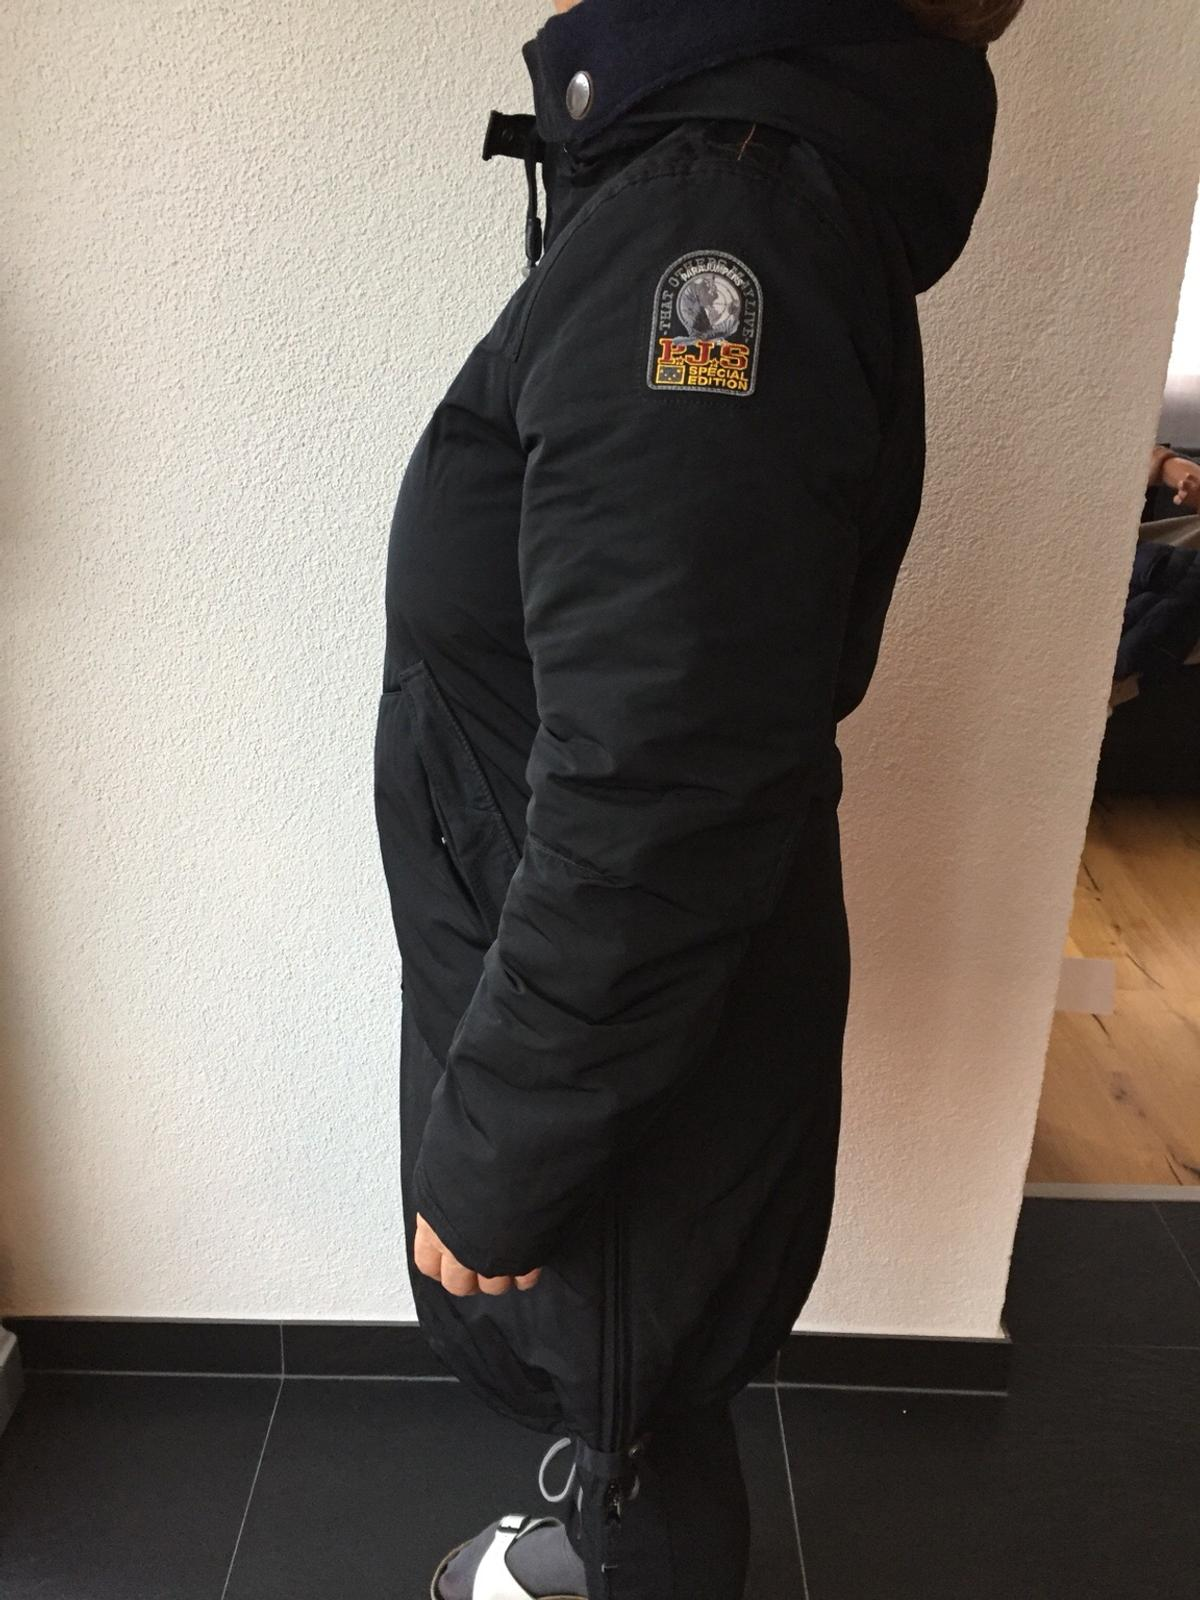 6426 Wintermantel €200 Roppen Parajumpers Damen 00 in for N0XOk8nZwP